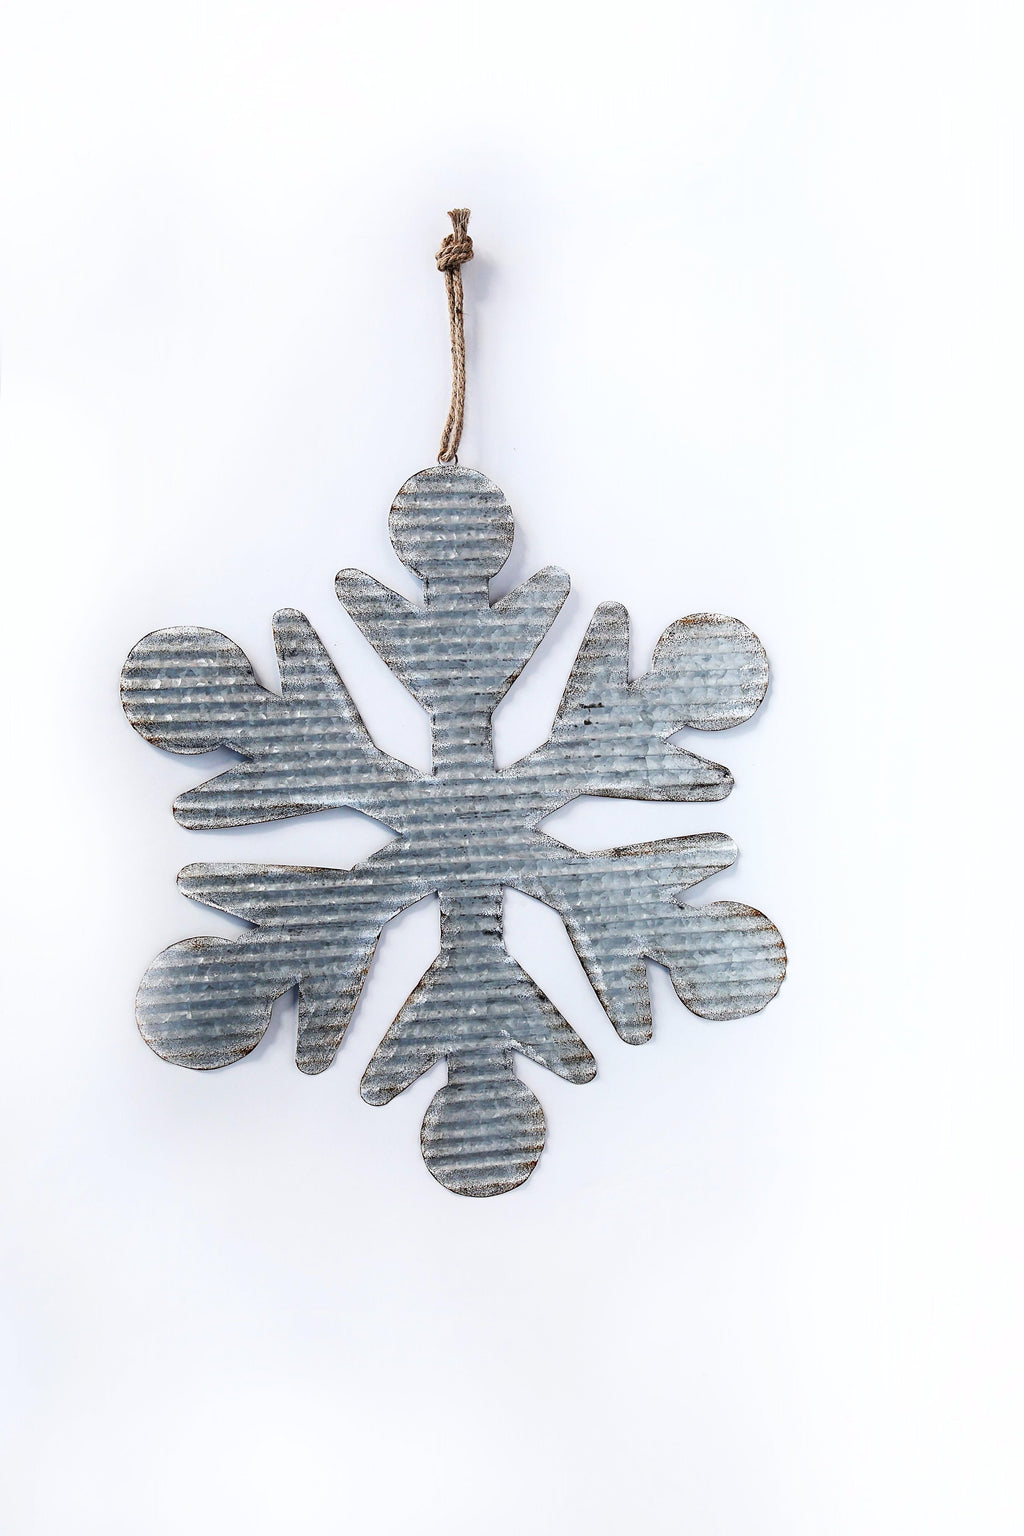 EXTRA LARGE RUSTIC METAL SNOWFLAKE WITH ROPE HANGER